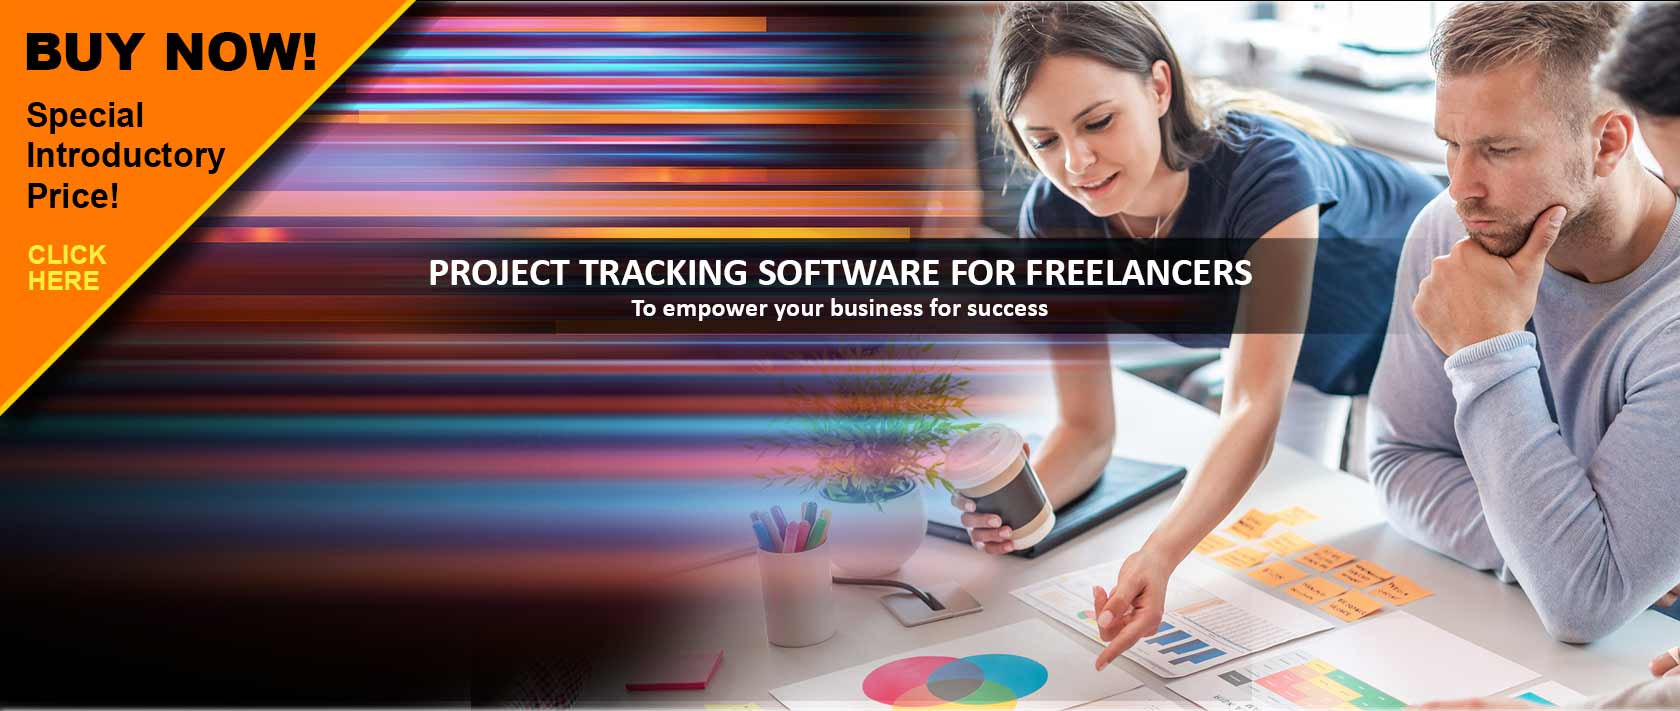 Freelance Project Tracking Software